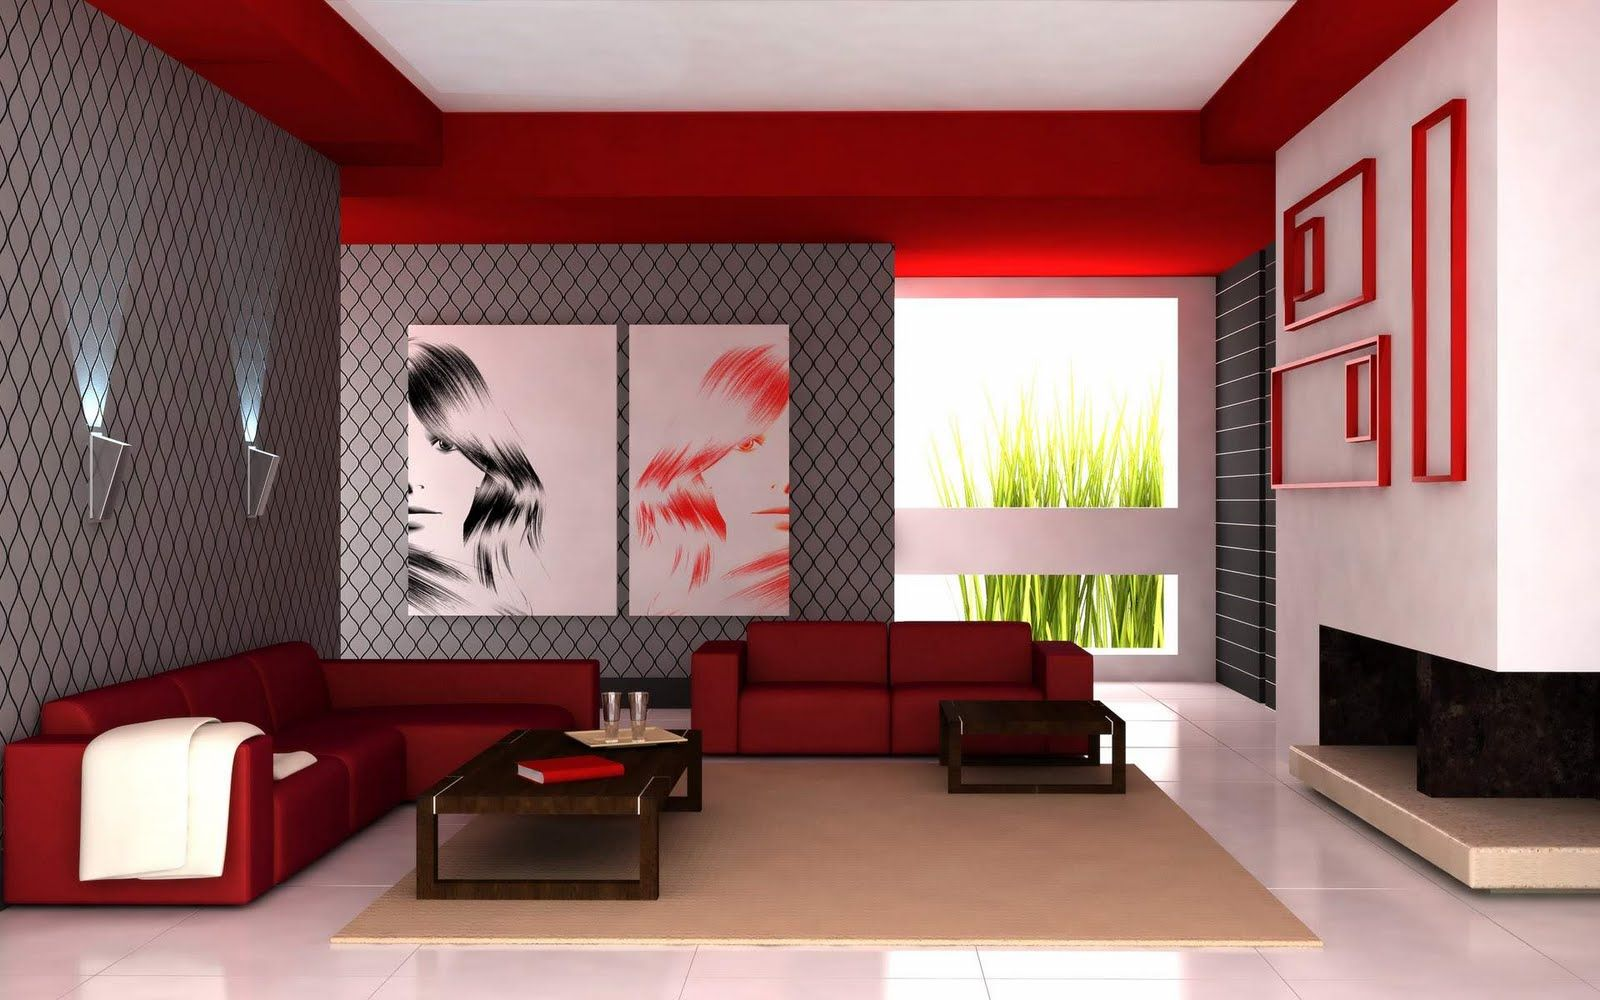 Room Colora discovering the best living room colors ideas | home decorating